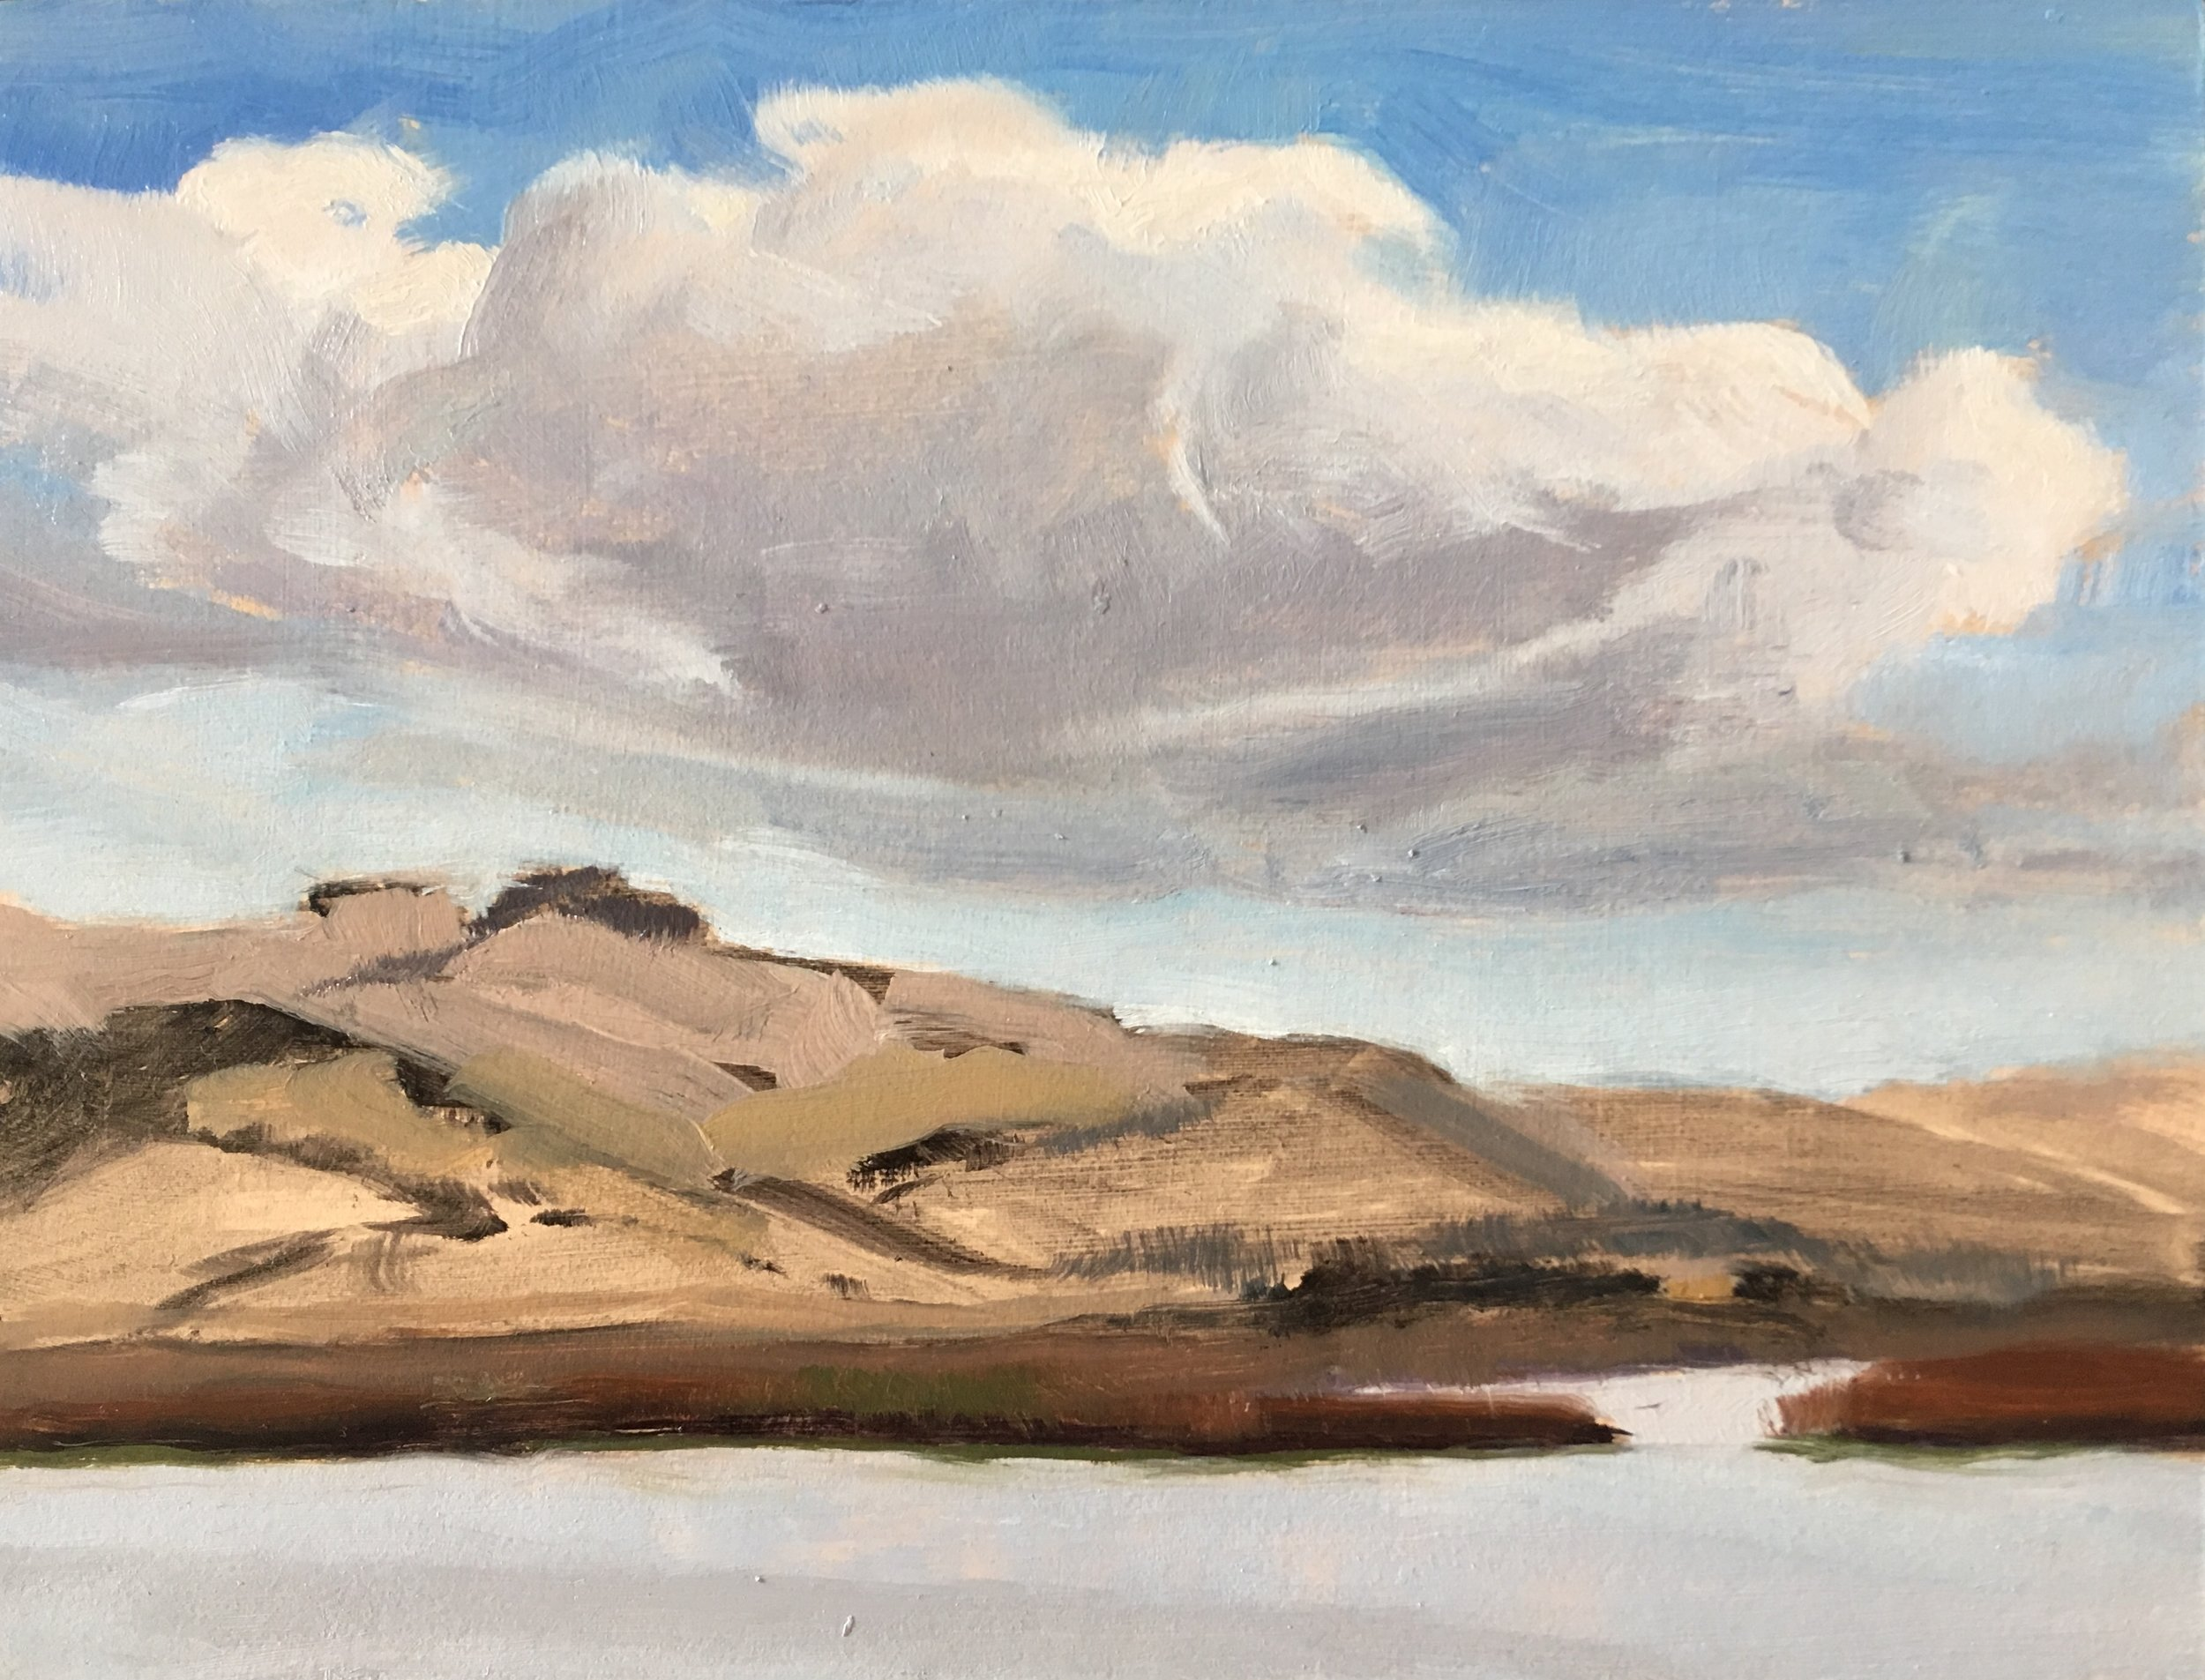 I loved painting this oil sketch of the Fagan Marsh from the Napa Marina. A beautiful clear day with clouds racing across the sky.